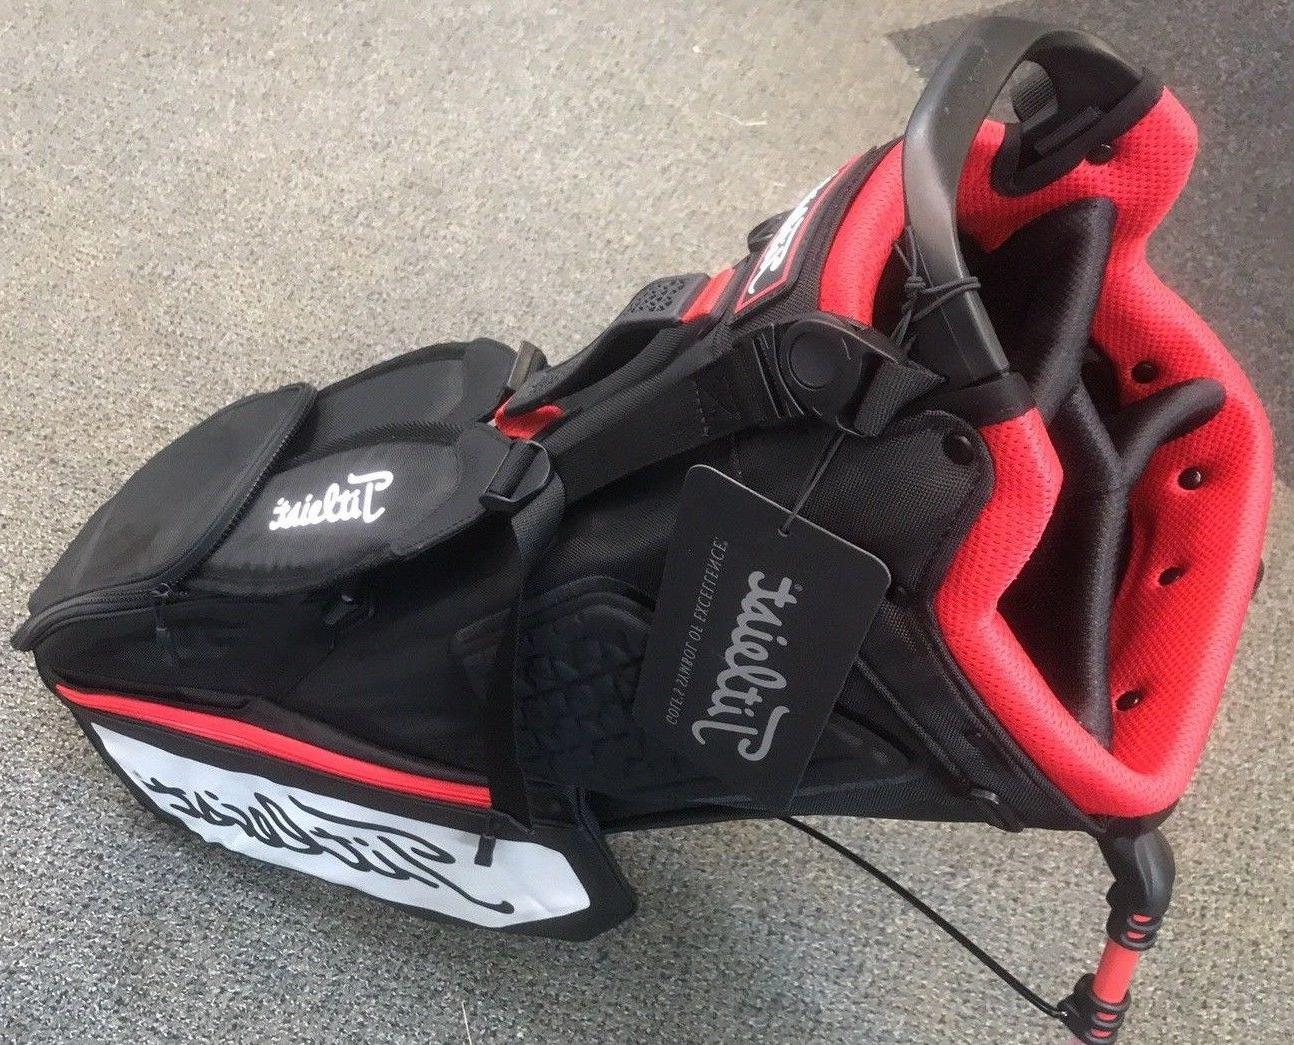 ***BRAND NEW*** Players 4 Bag - Black/White/Red